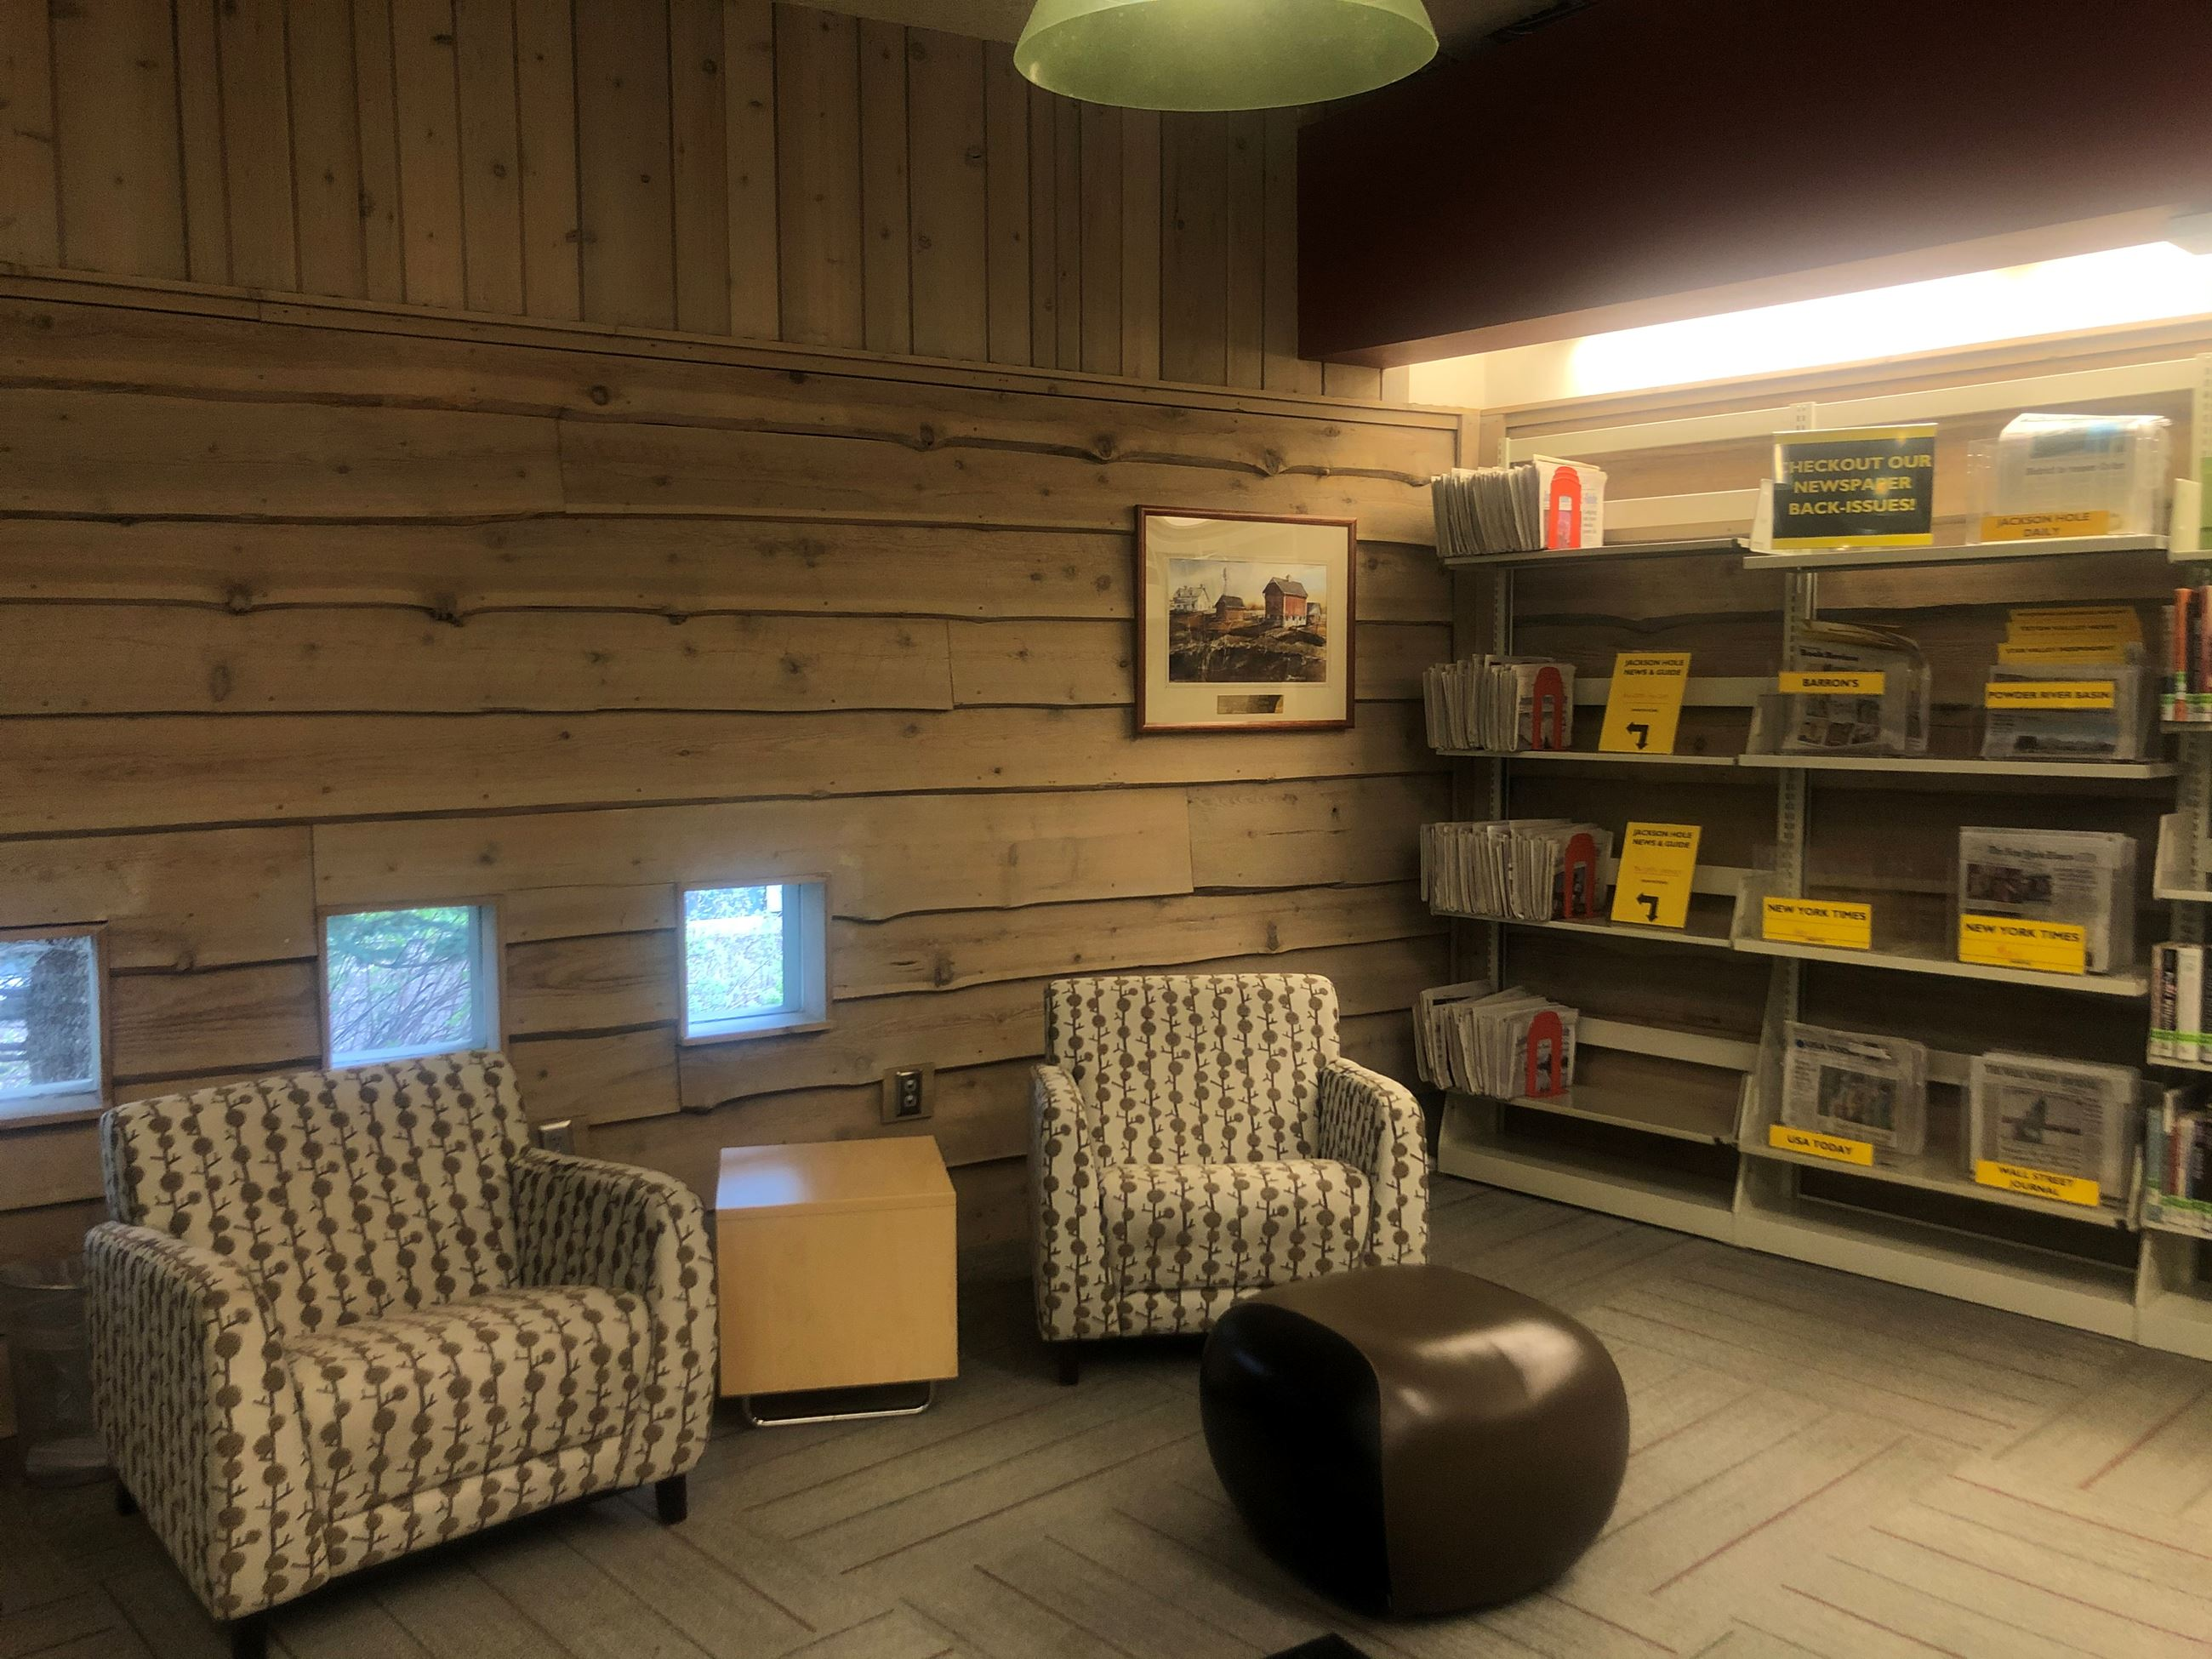 image from interior of library for zoom background